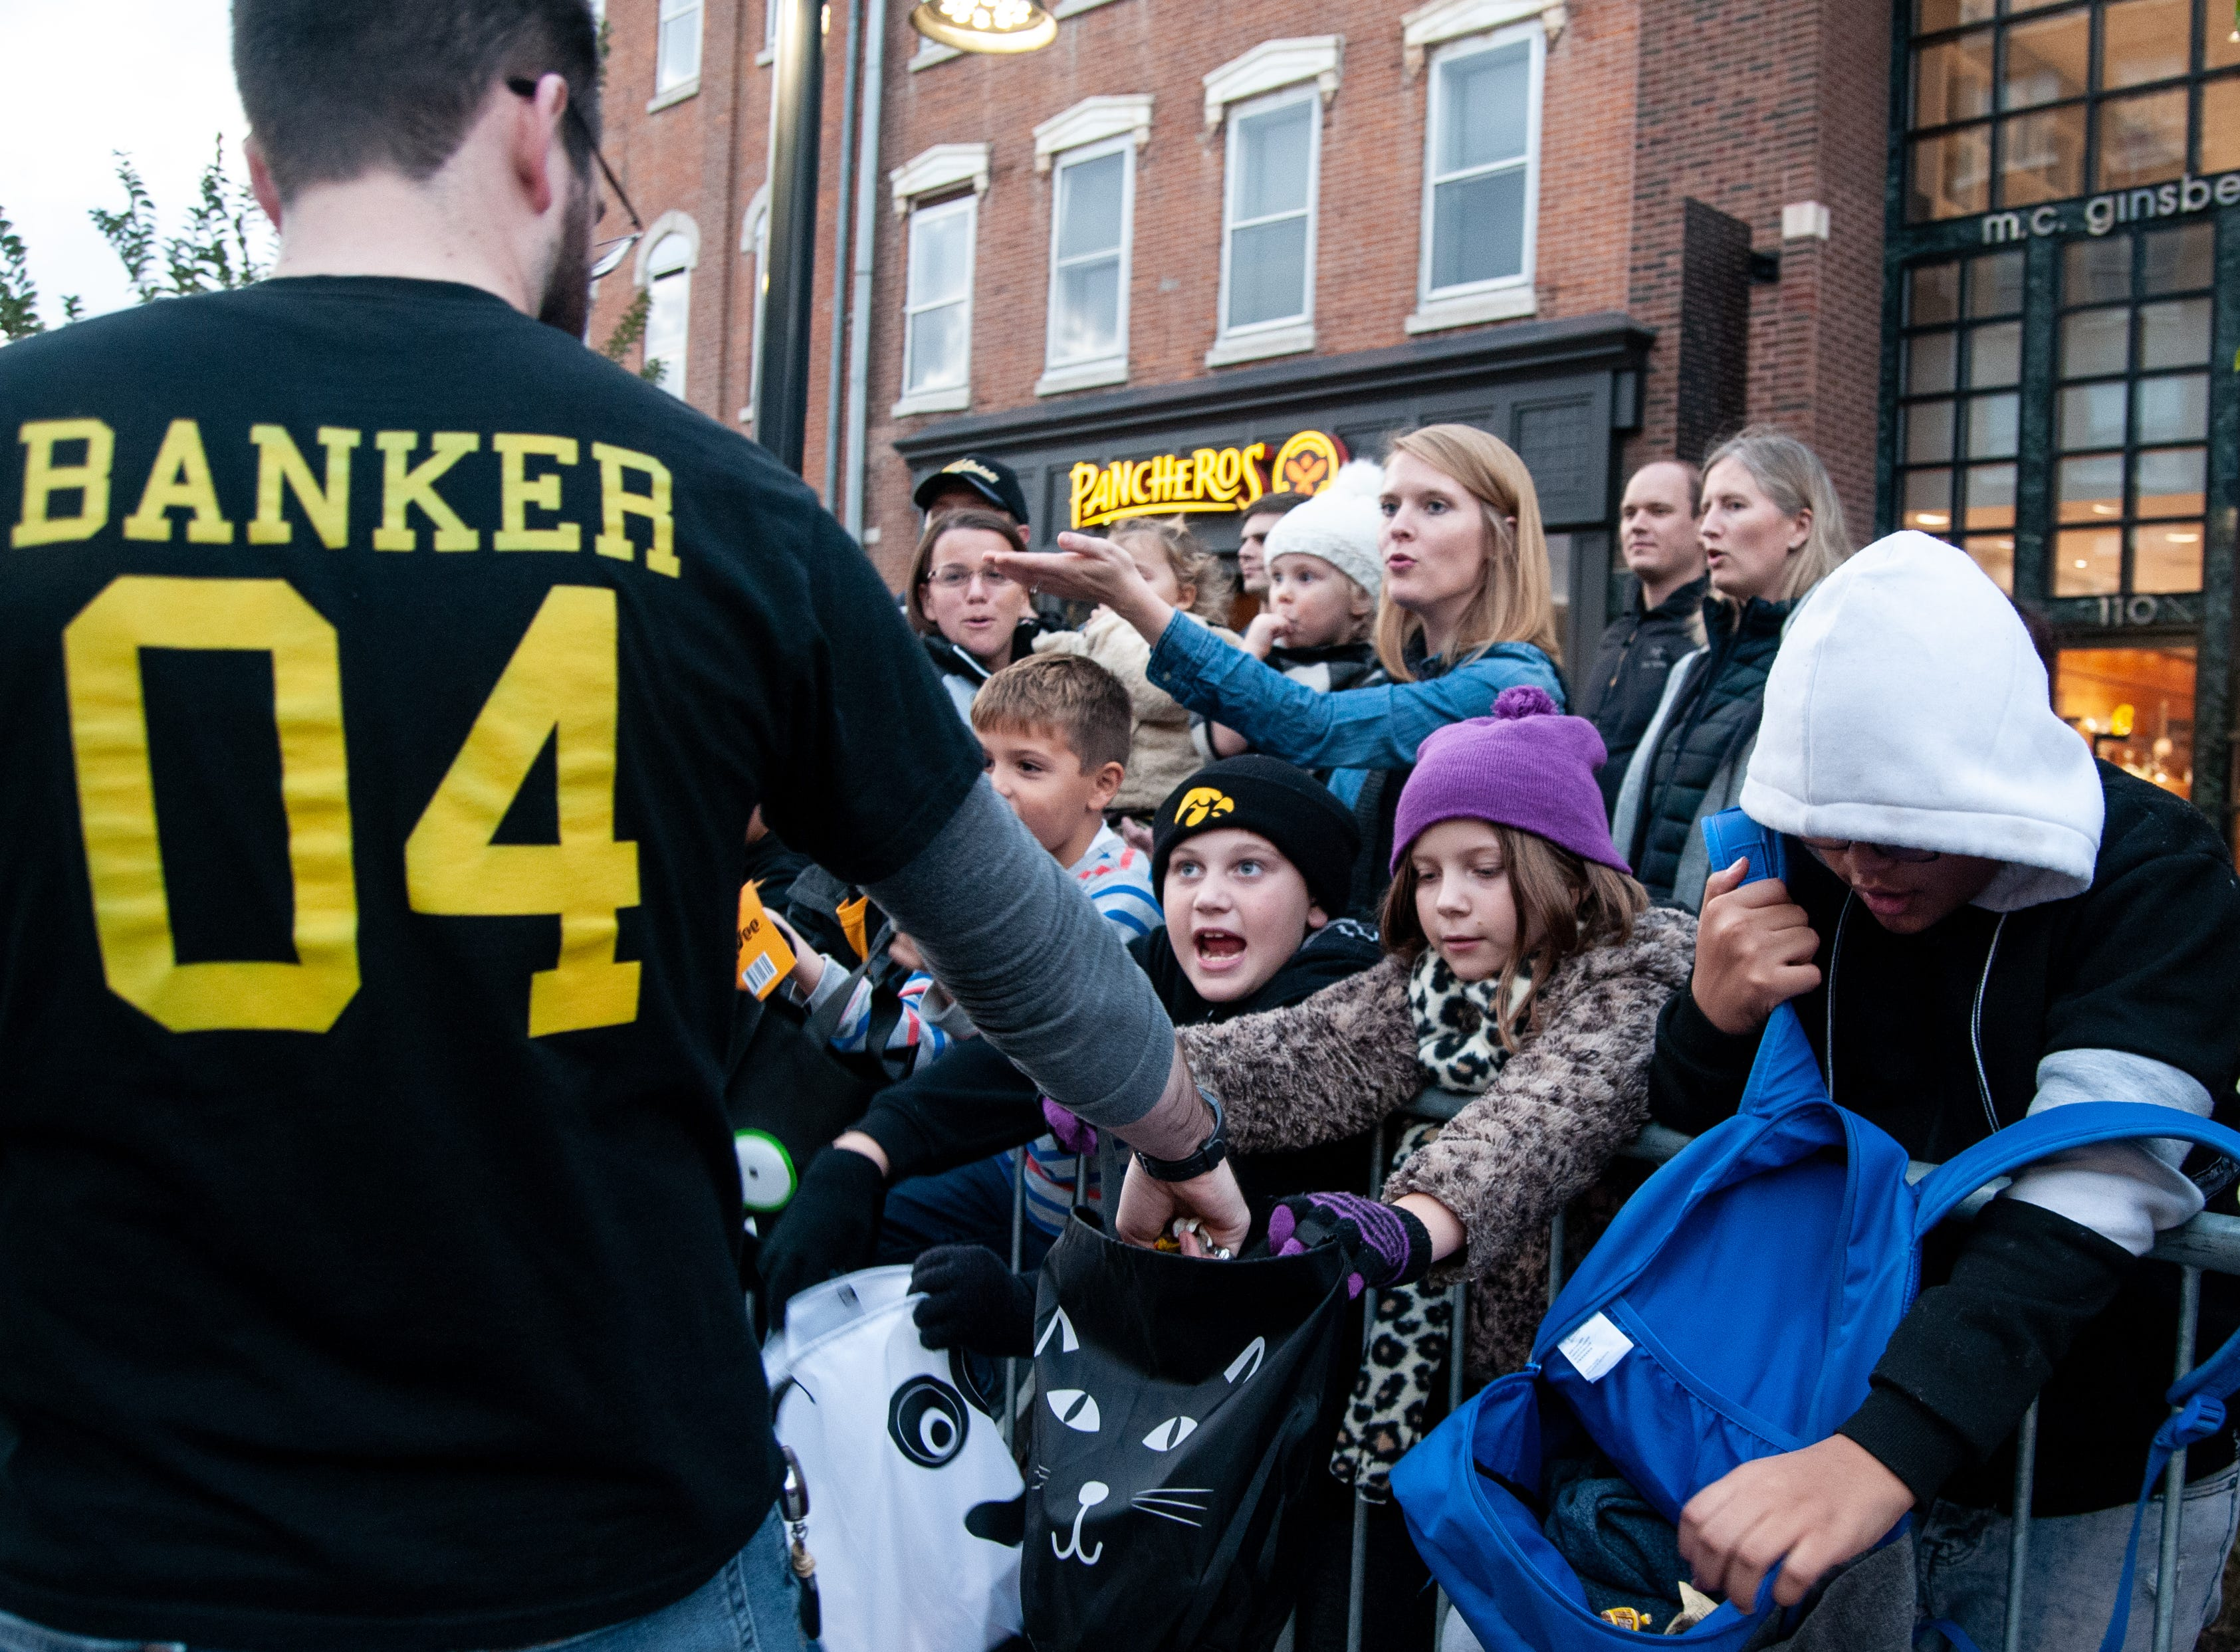 Kids chant for candy during the 2018 Homecoming parade, Friday, Oct. 19, 2018, in Iowa City.